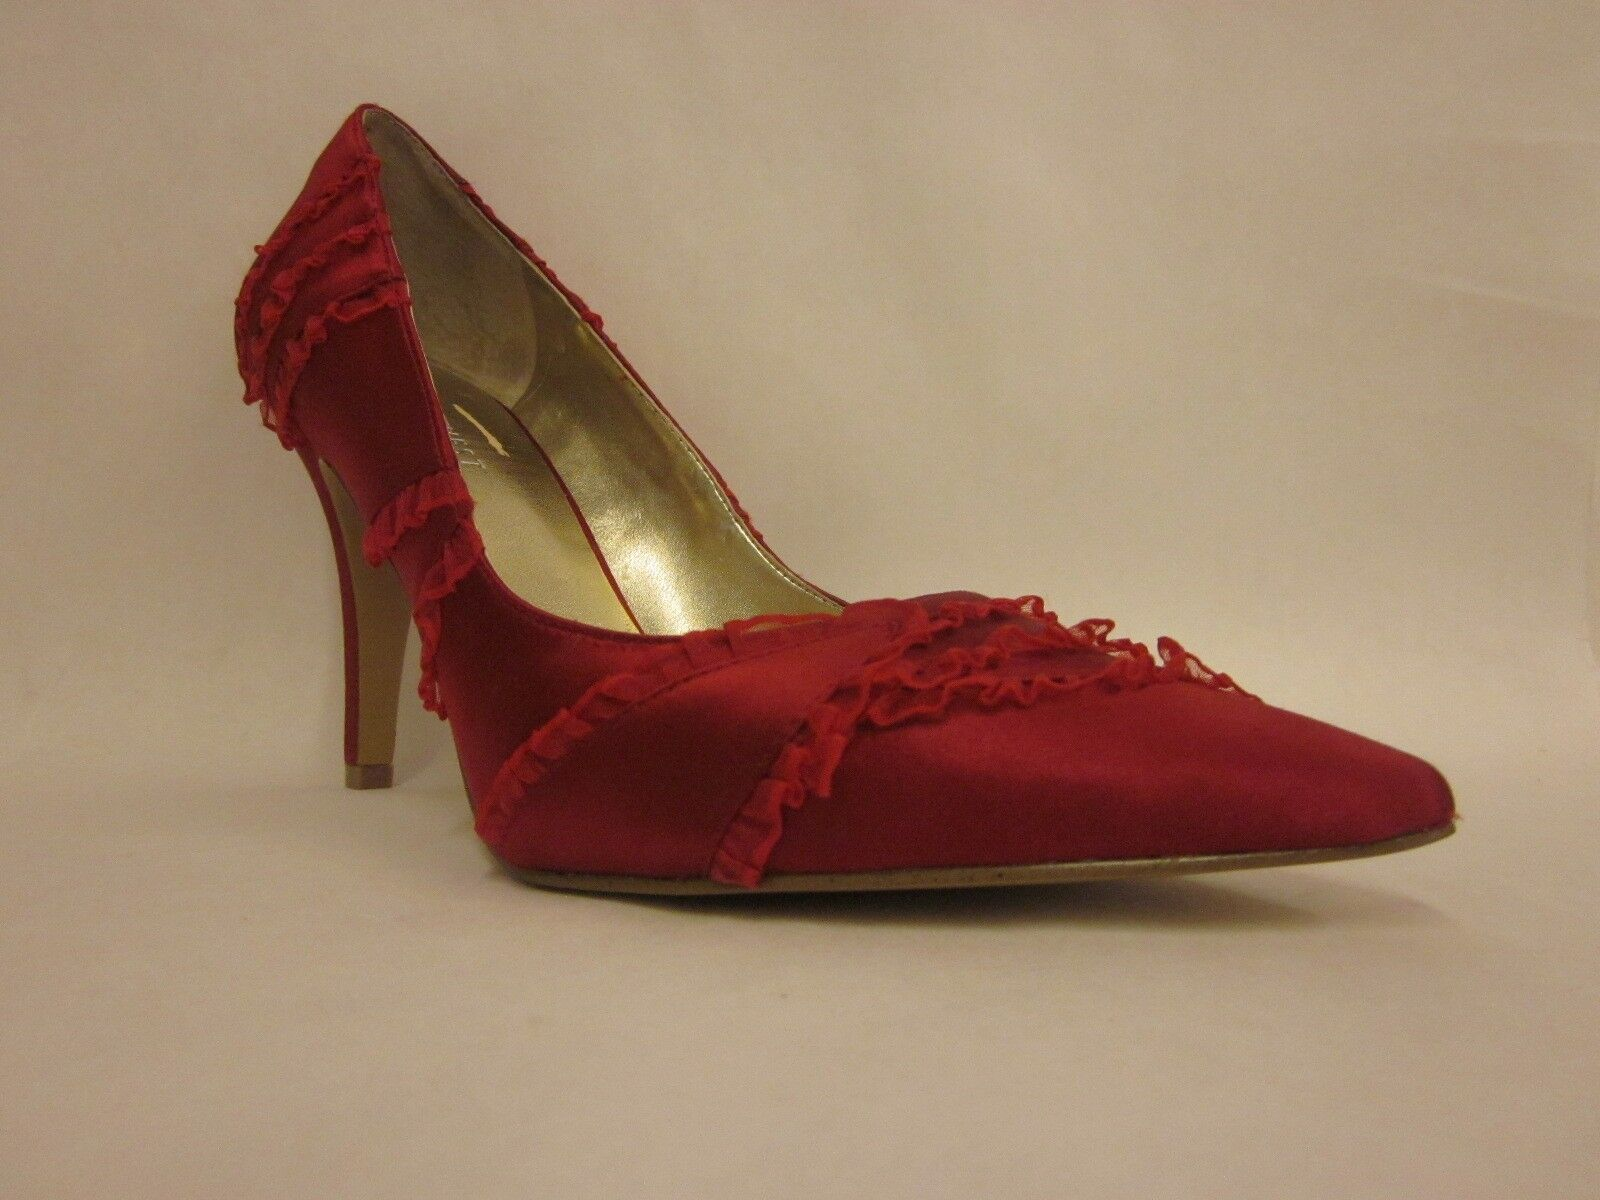 Nine Nine Nine West Mamishka Red Satin Heel - Size 9.5 3ade4e